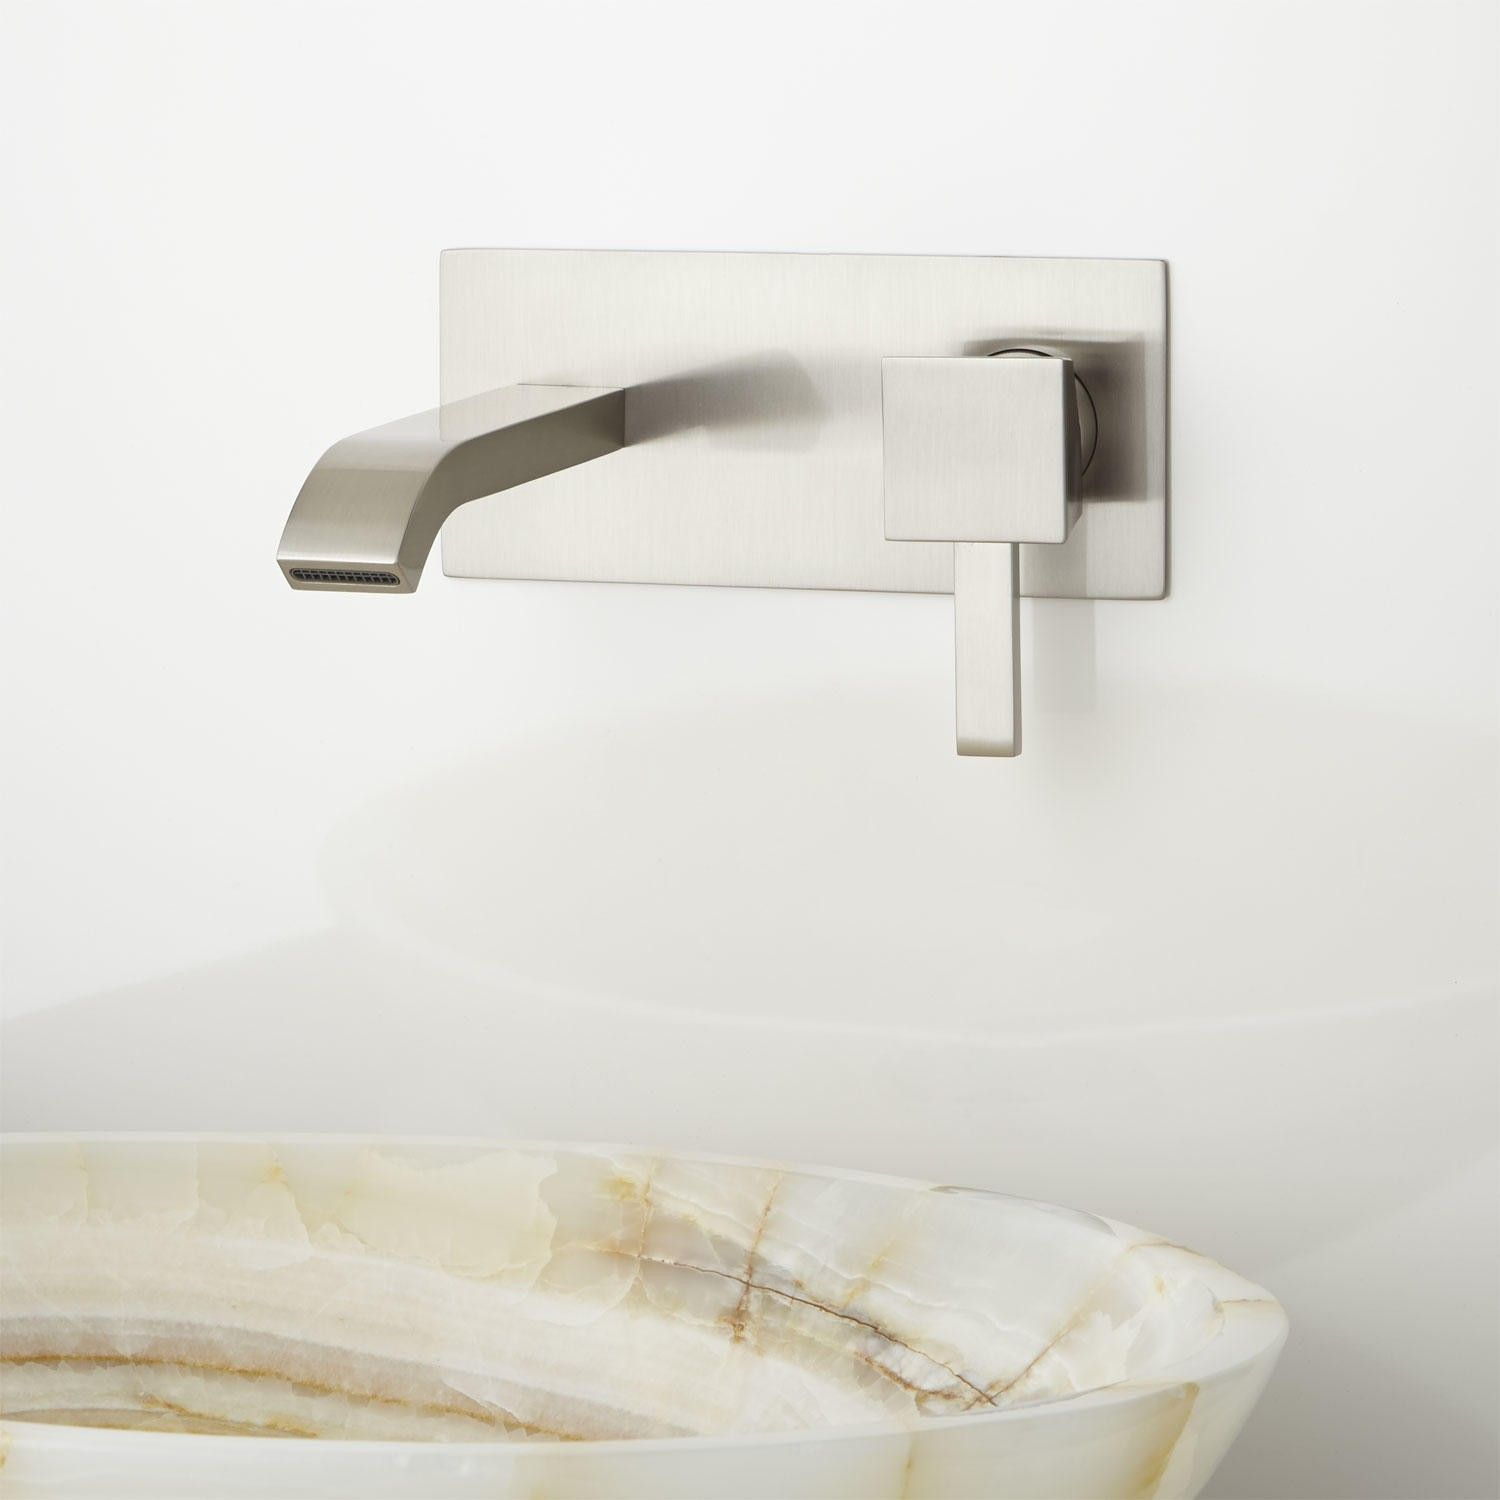 Arianna Wall-Mount Bathroom Faucet | Wall mount, Faucet and Walls